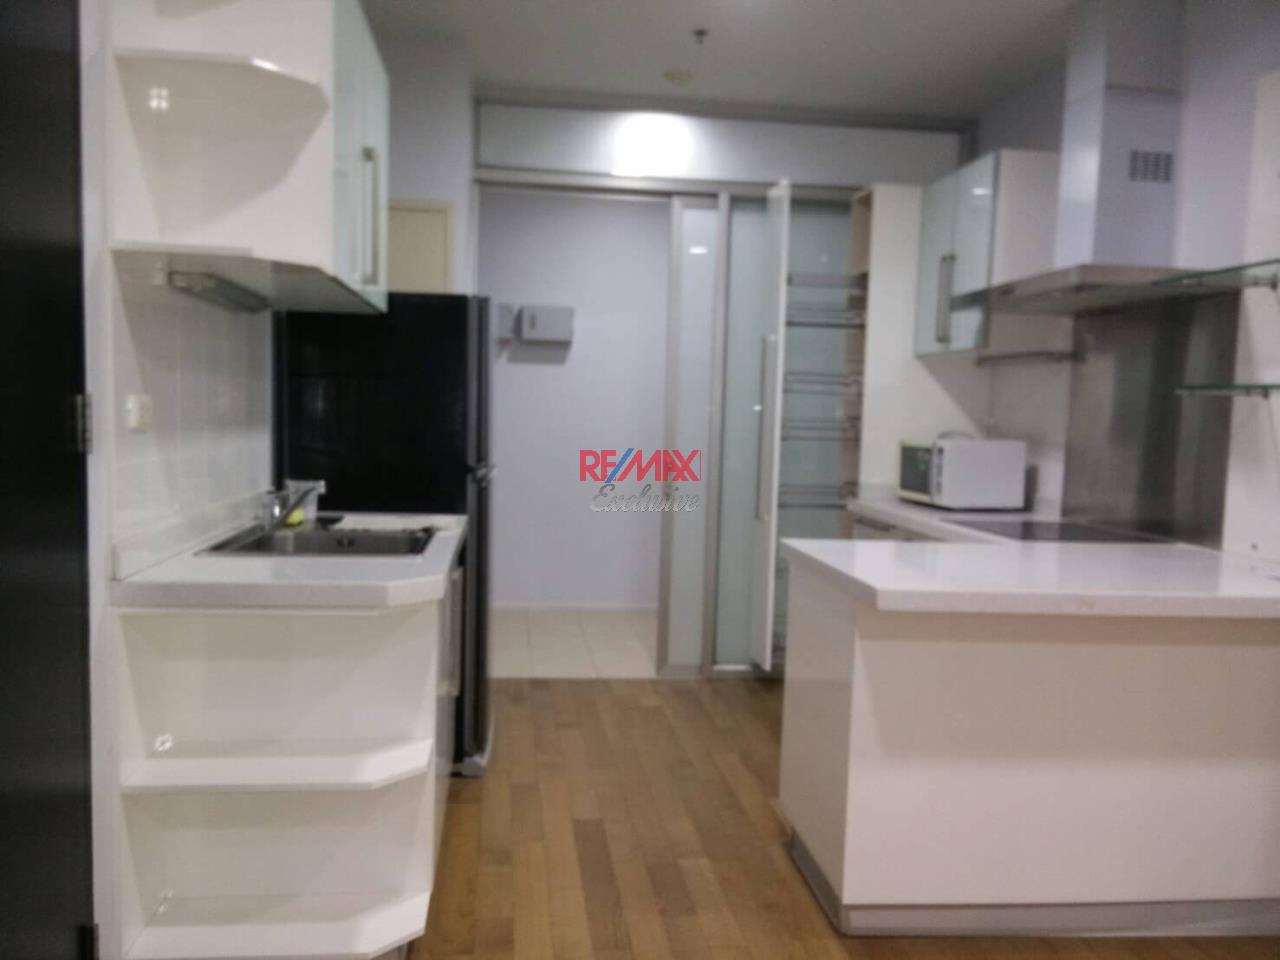 RE/MAX Exclusive Agency's The Madison Condo 2 Bedrooms 139 Sqm., For Sale With Tenant 24,000 000 THB!!  3